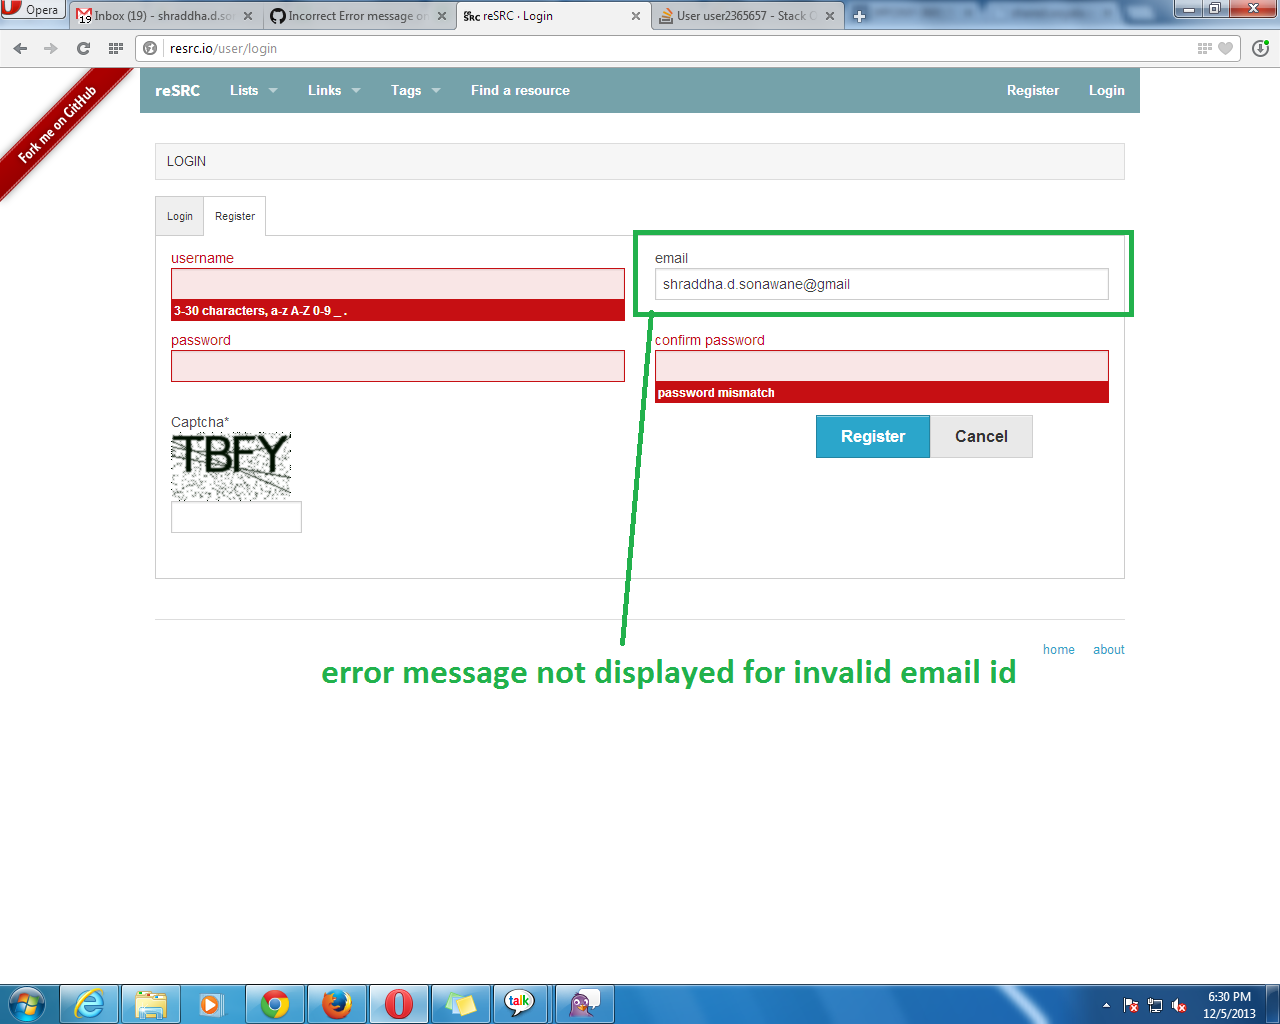 Error message not displayed for invalid email id format